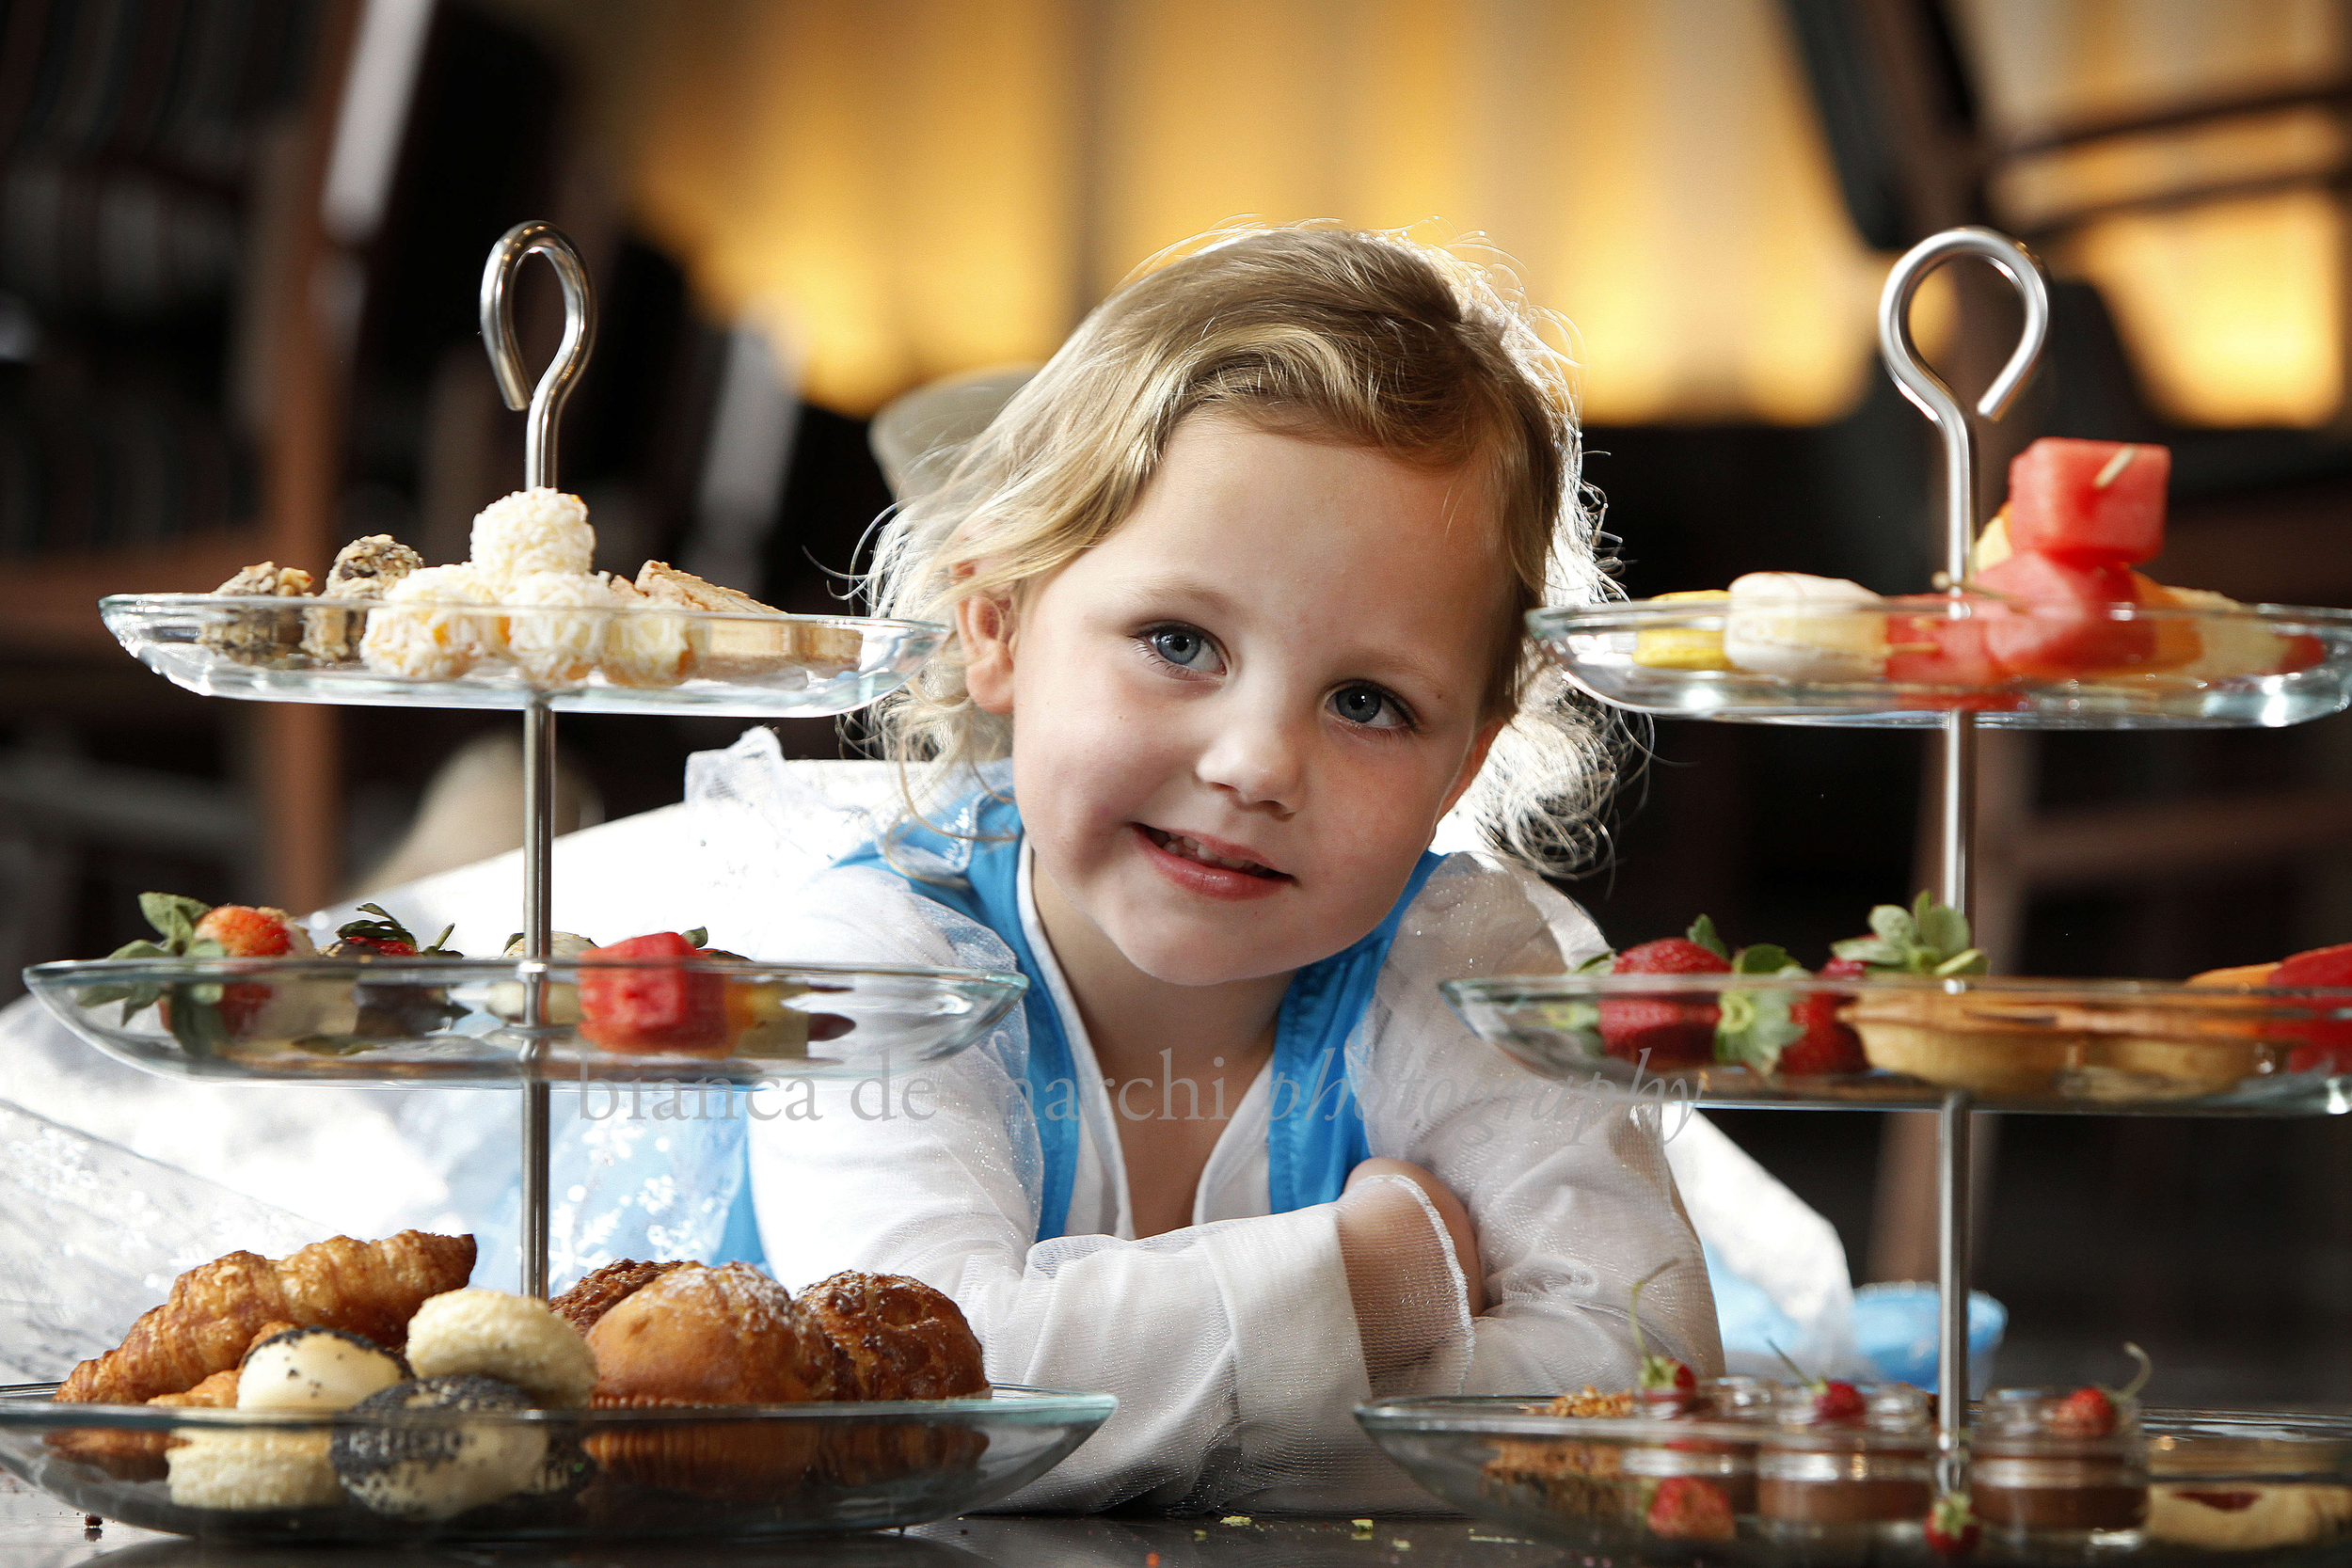 CHP_Export_120346929_Crowne Plaza%27s is hosting high teas for children during the school holidays %5BPI.jpg